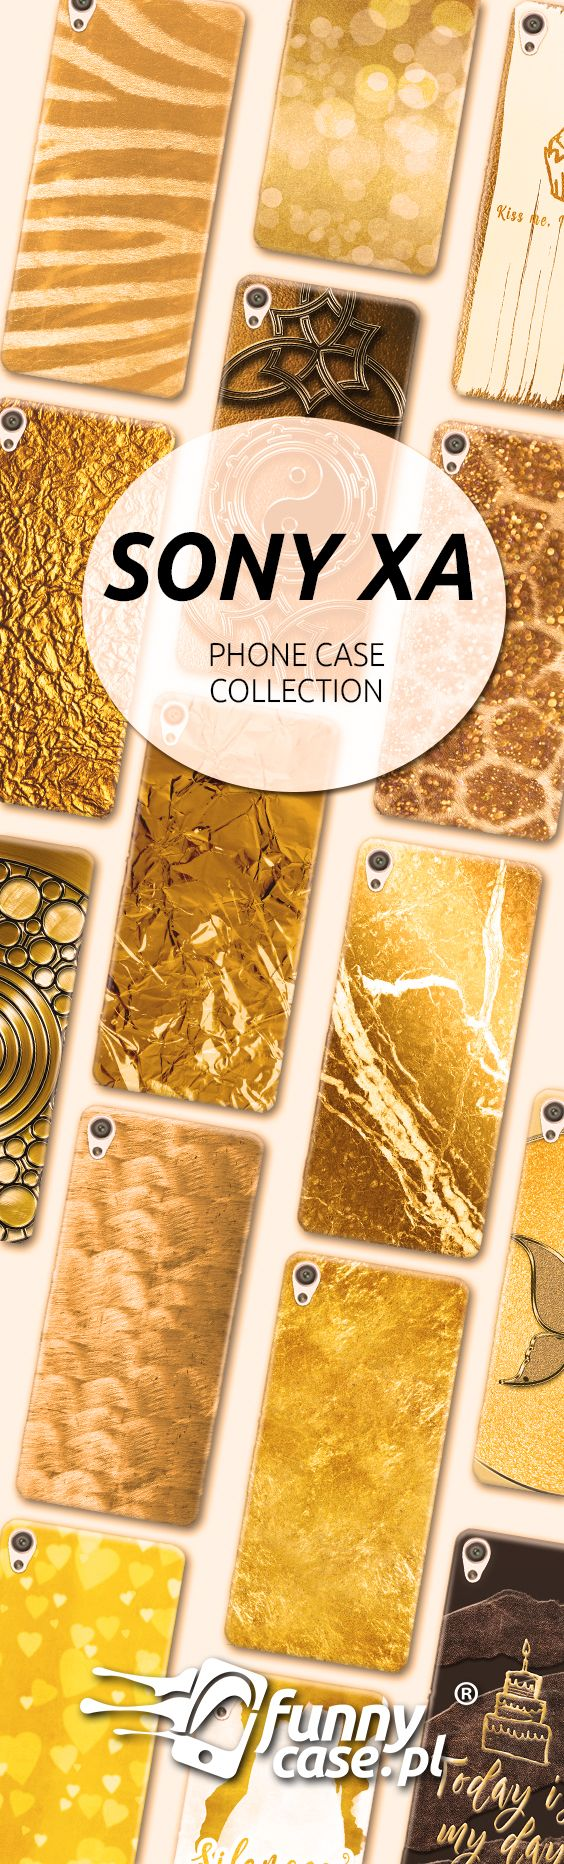 #sonyxa #sony #phonecase #gold #goldcollectwion #etui #cover